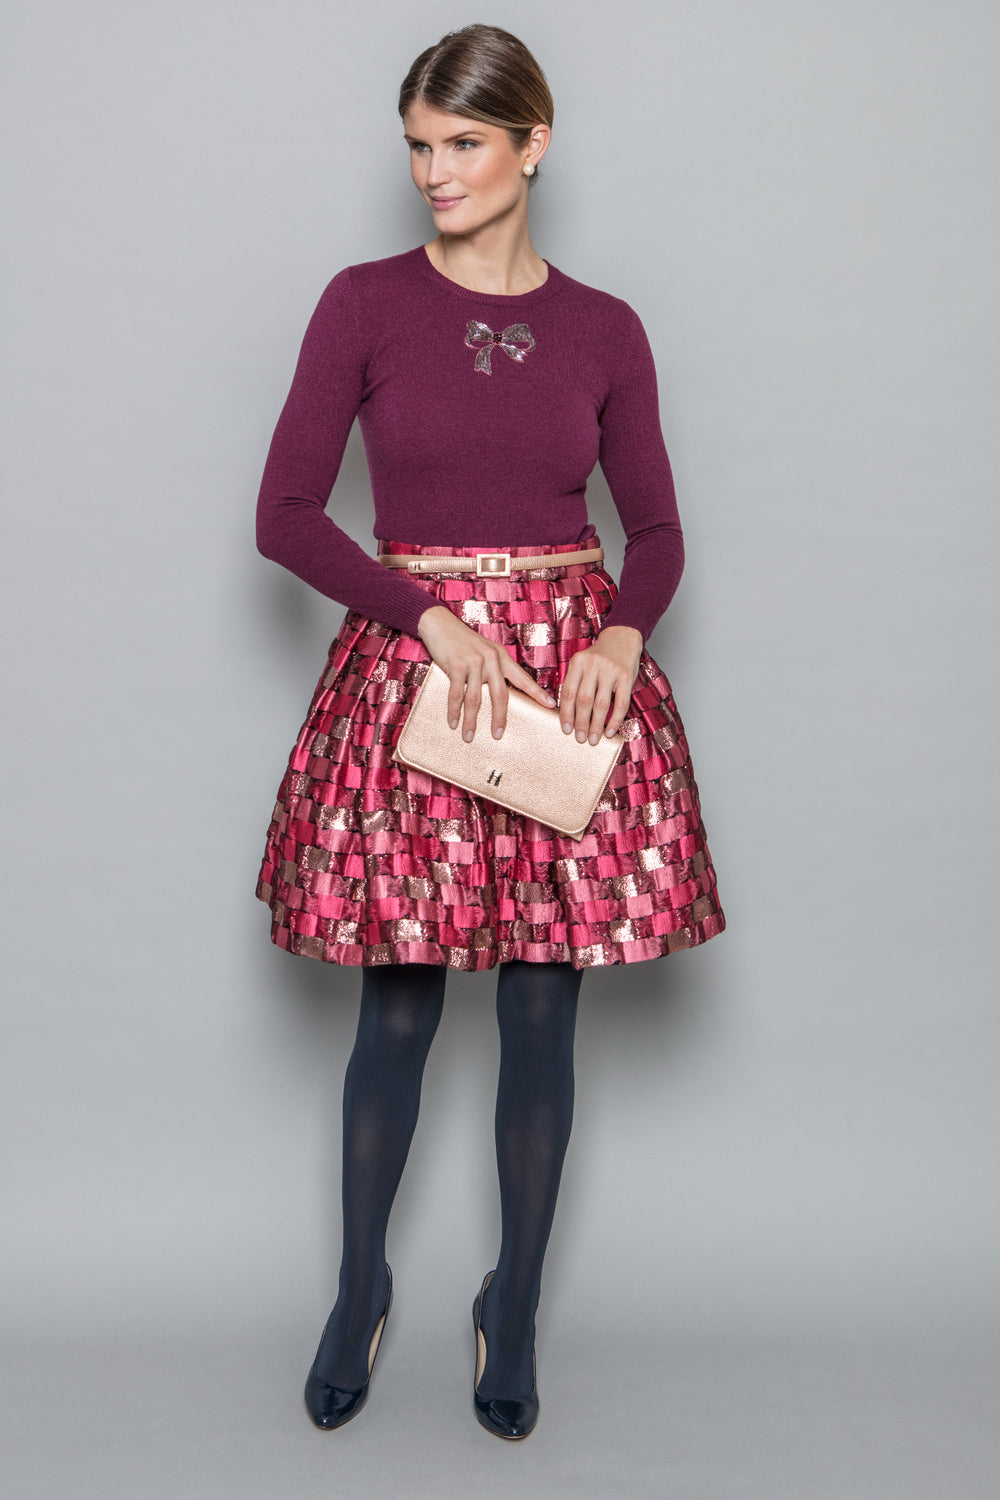 Charlette Skirt in Rosa